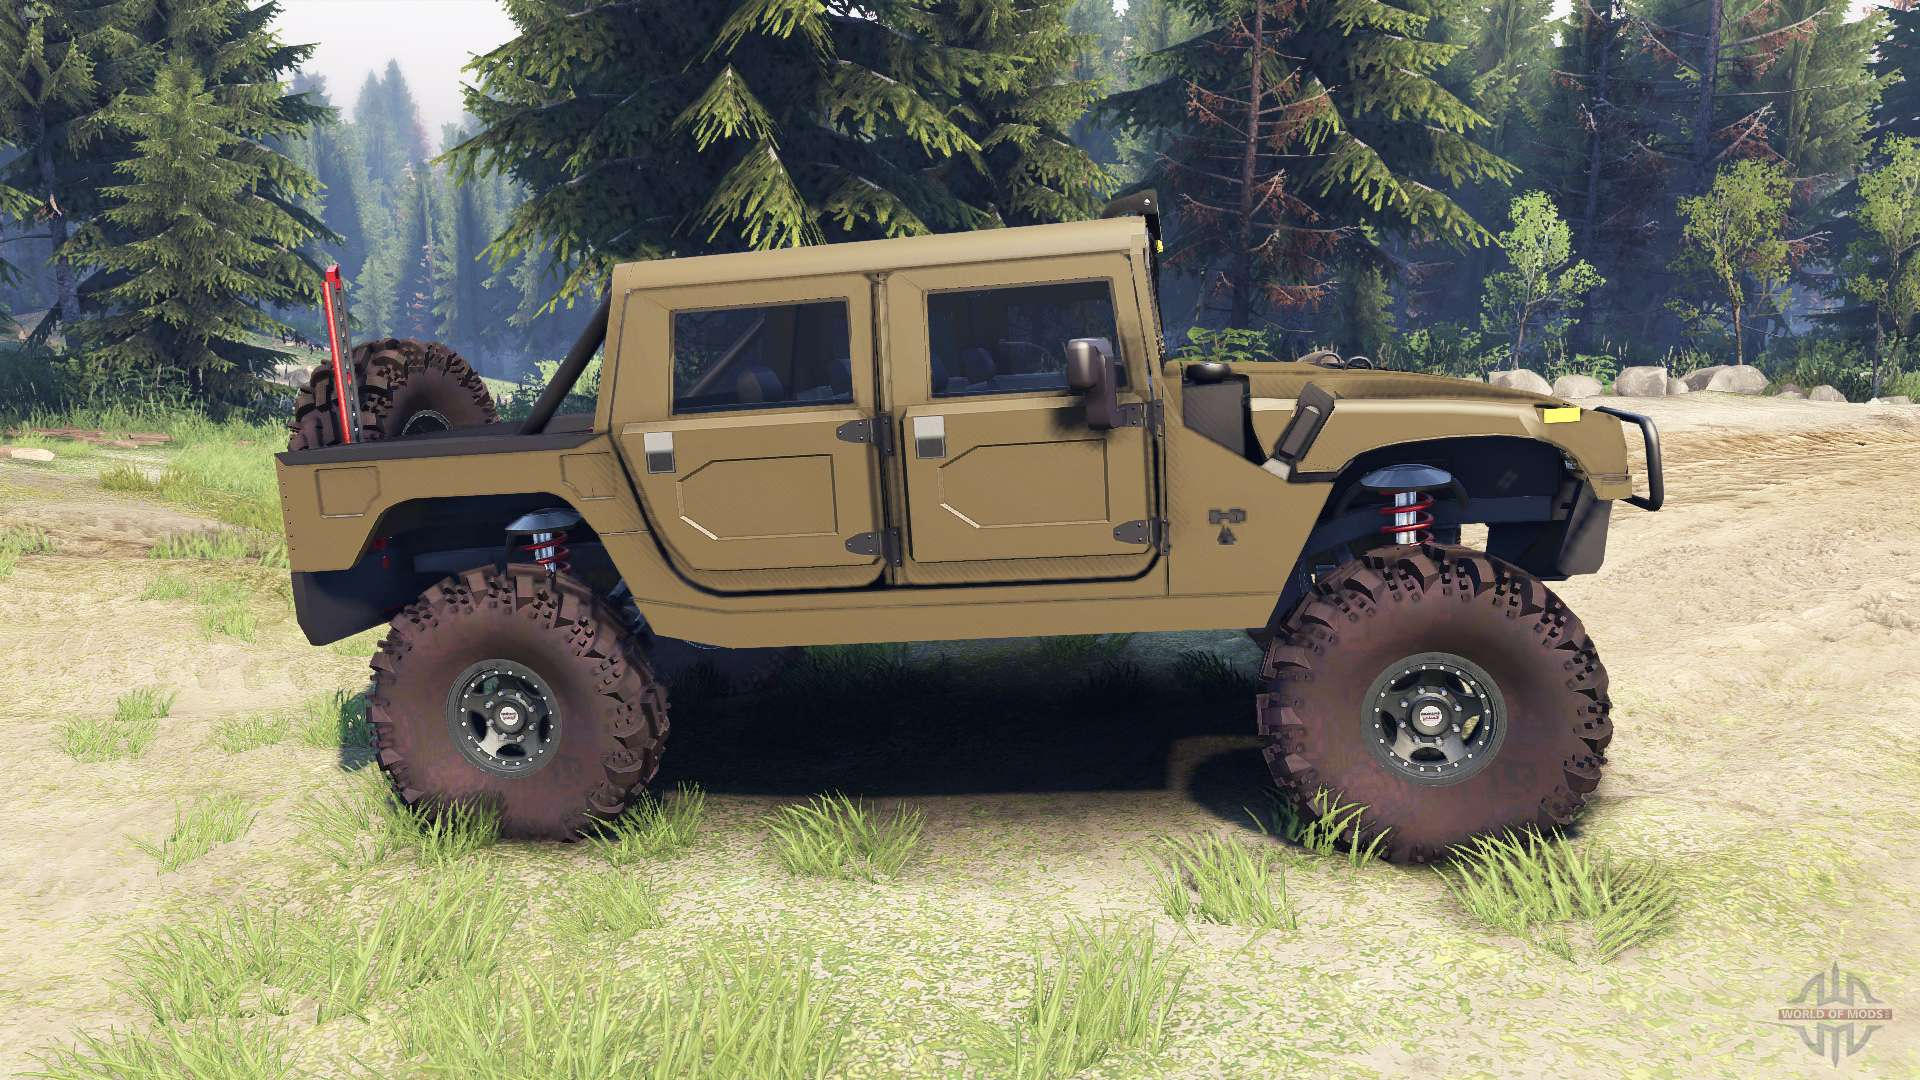 H1 army green for Spin Tires